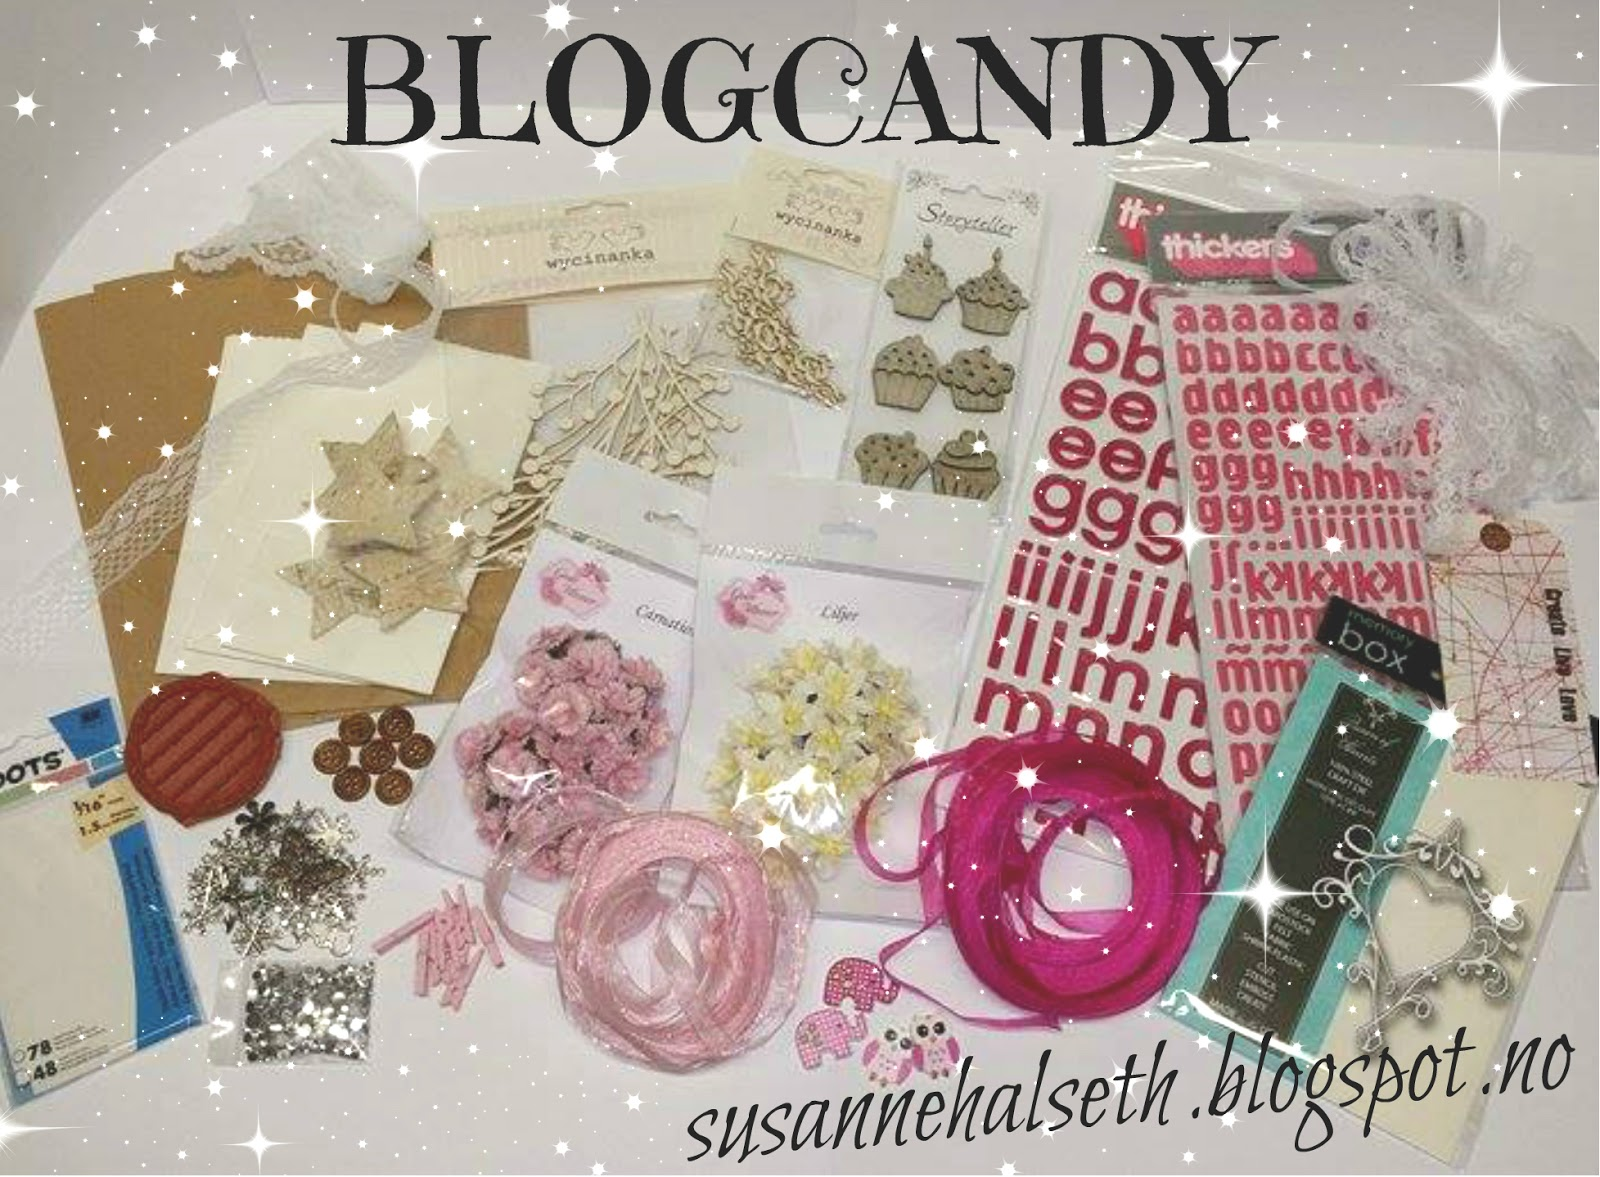 http://susannehalseth.blogspot.no/2015/03/kort-i-kraft-og-maja-blogcandy.html